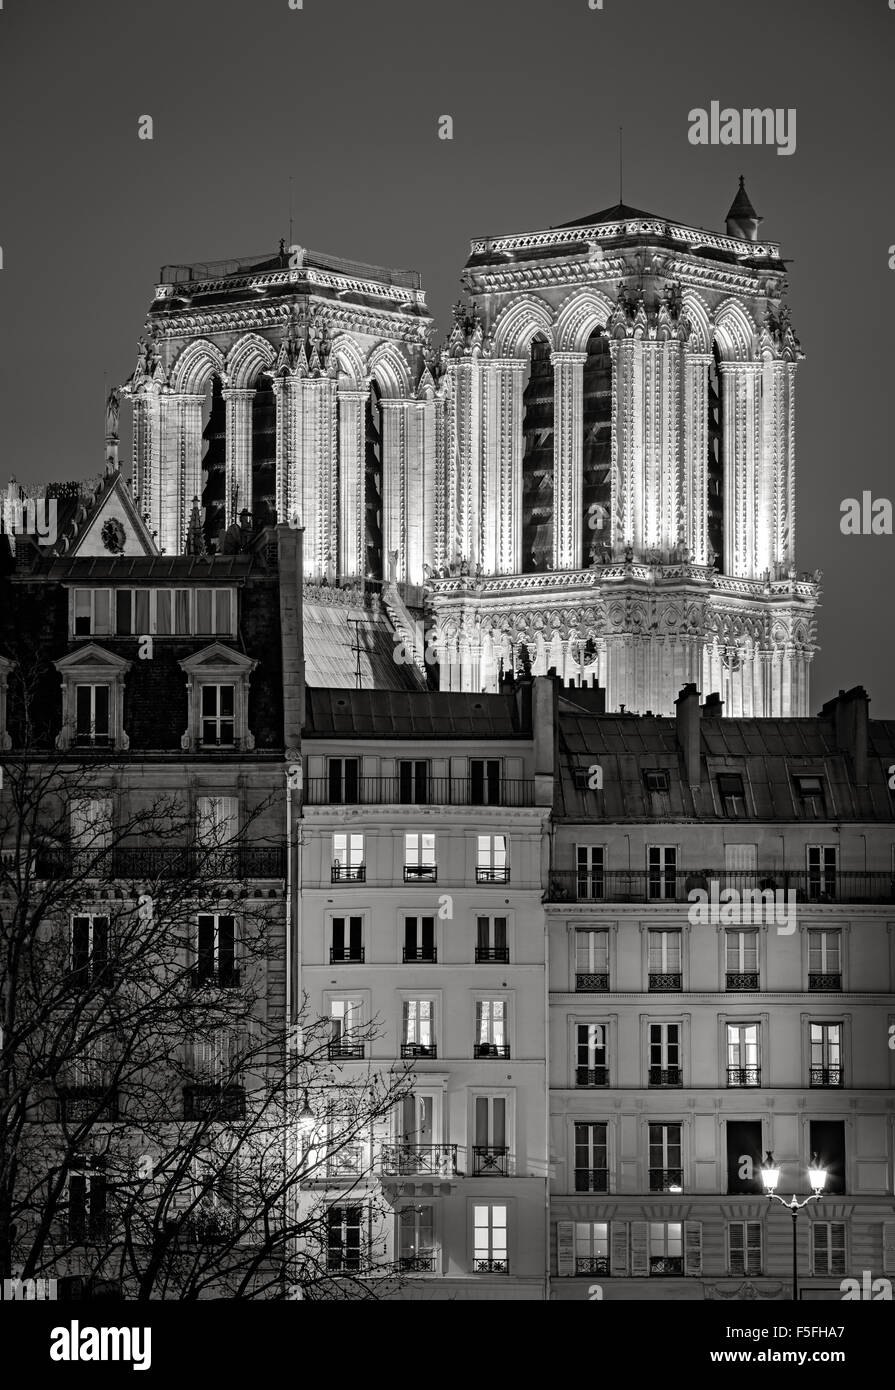 French Gothic towers of Notre Dame de Paris Cathedral illuminated at night. Ile de la Cite, 4th arrondissement, - Stock Image